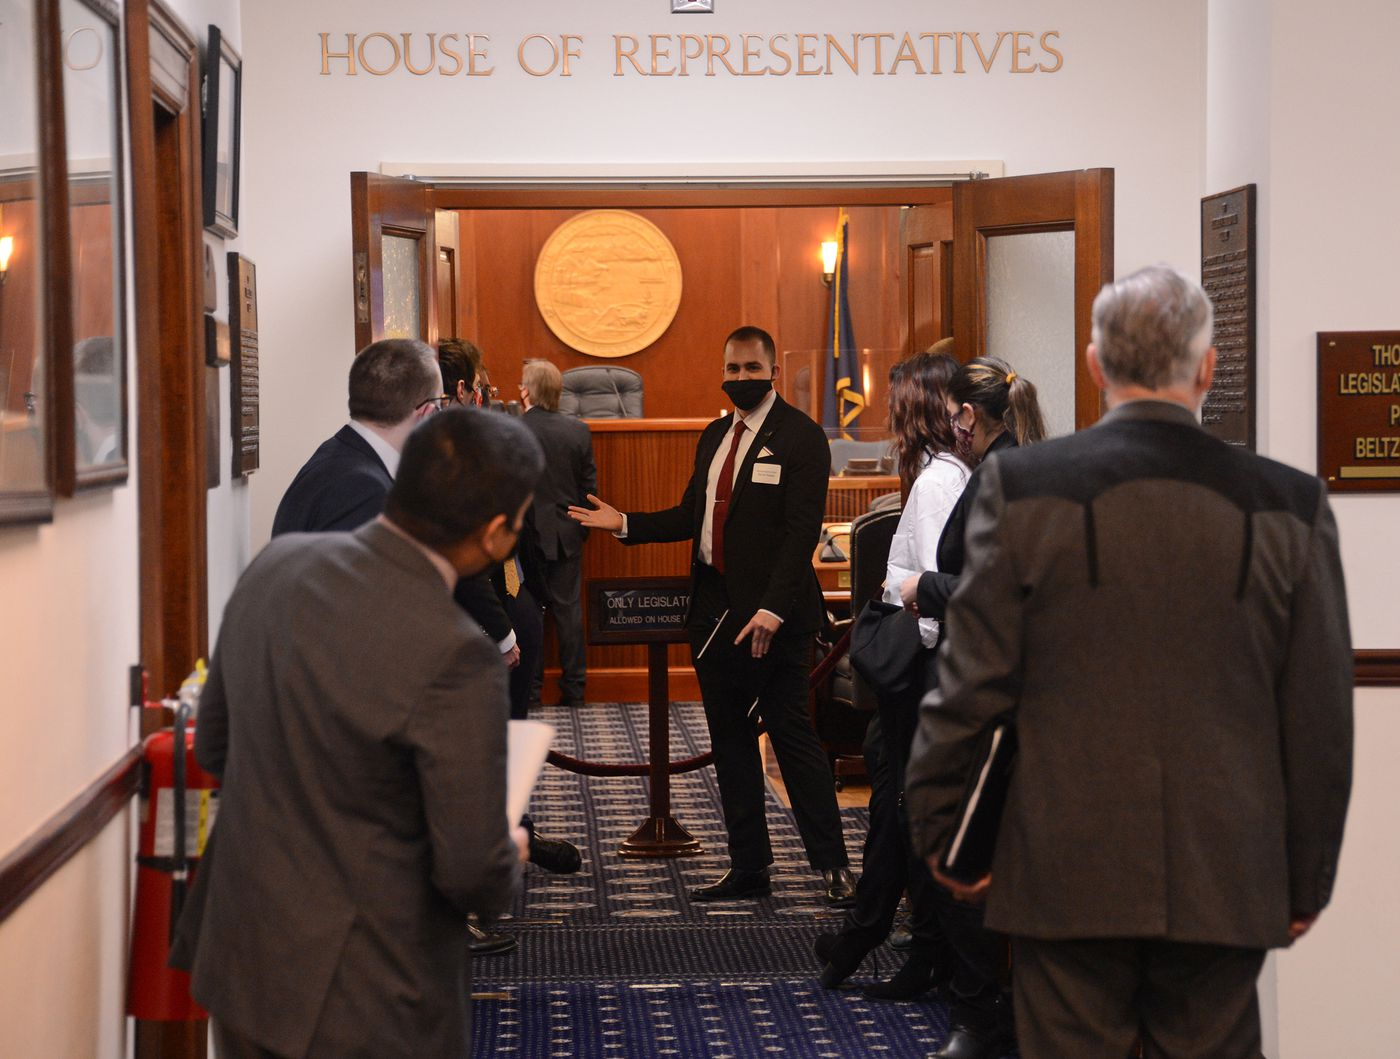 Representative-elect David Nelson, R-Anchorage, talks to new House pages on Wednesday, Jan. 13, 2021 before a training session for new legislators and staff. (James Brooks / ADN)